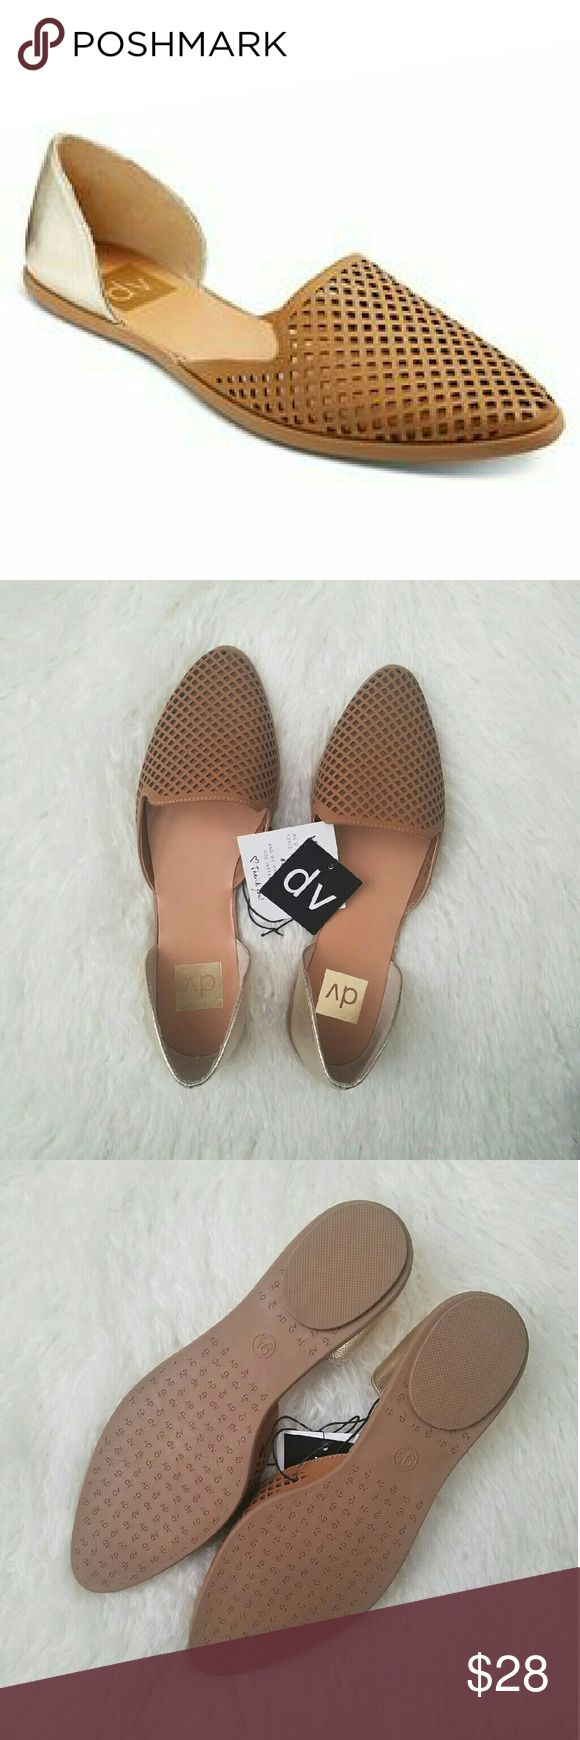 ***ENDS 12 PM ET! $ FIRM***   Tan & Gold Flats Two piece flats. Manmade materials. DV by Dolce Vita Shoes Flats & Loafers